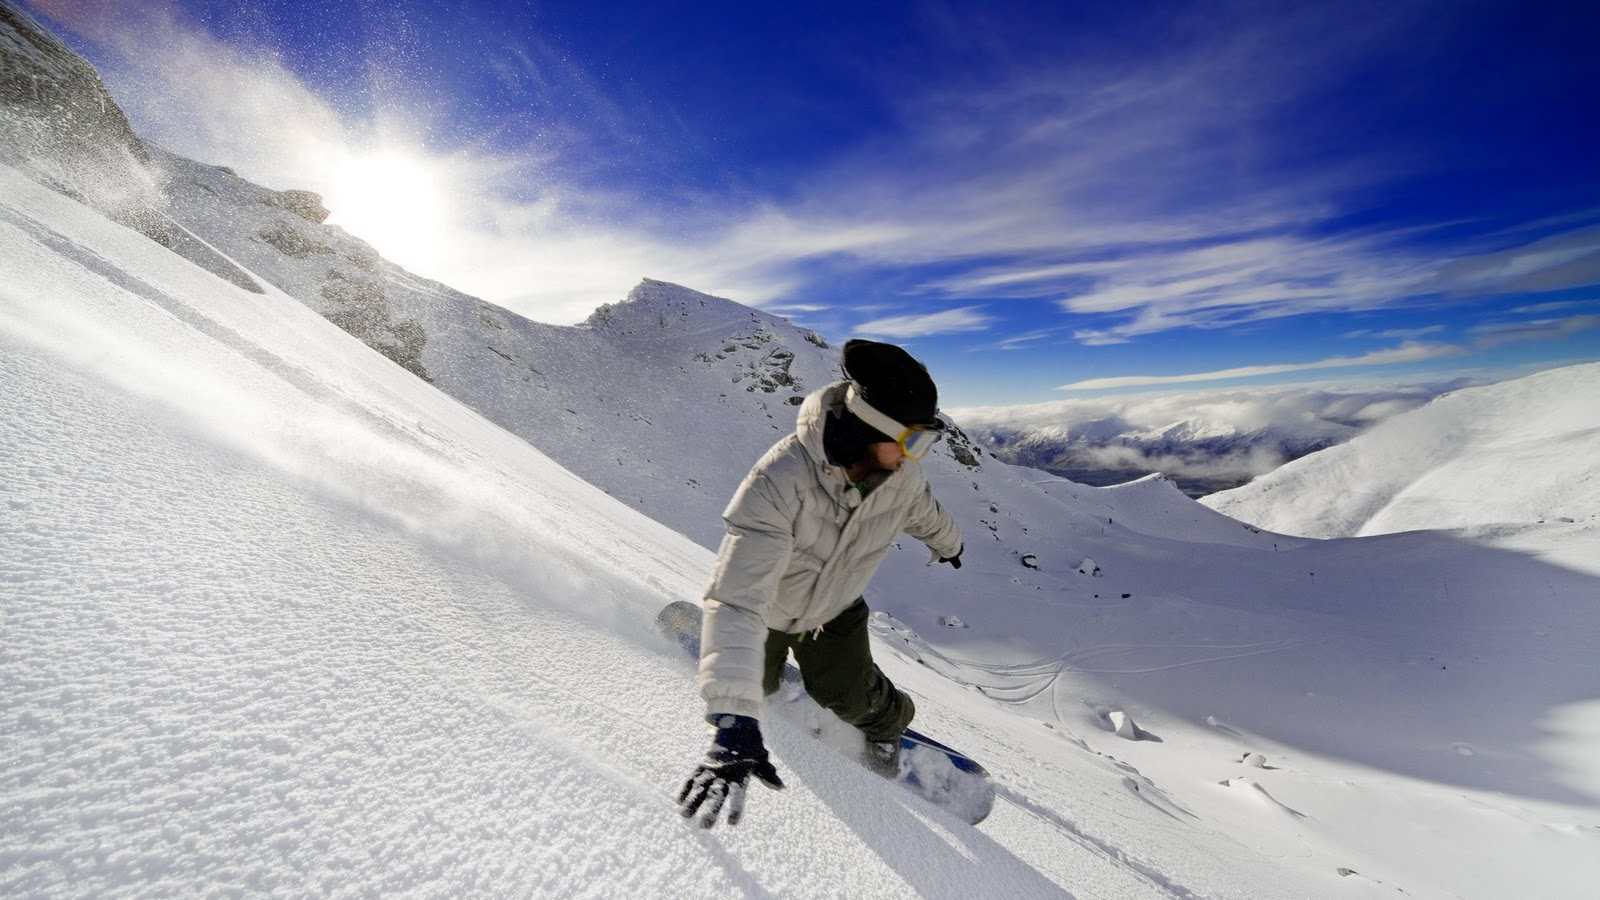 snowboarding wallpapers wallpaper-#36